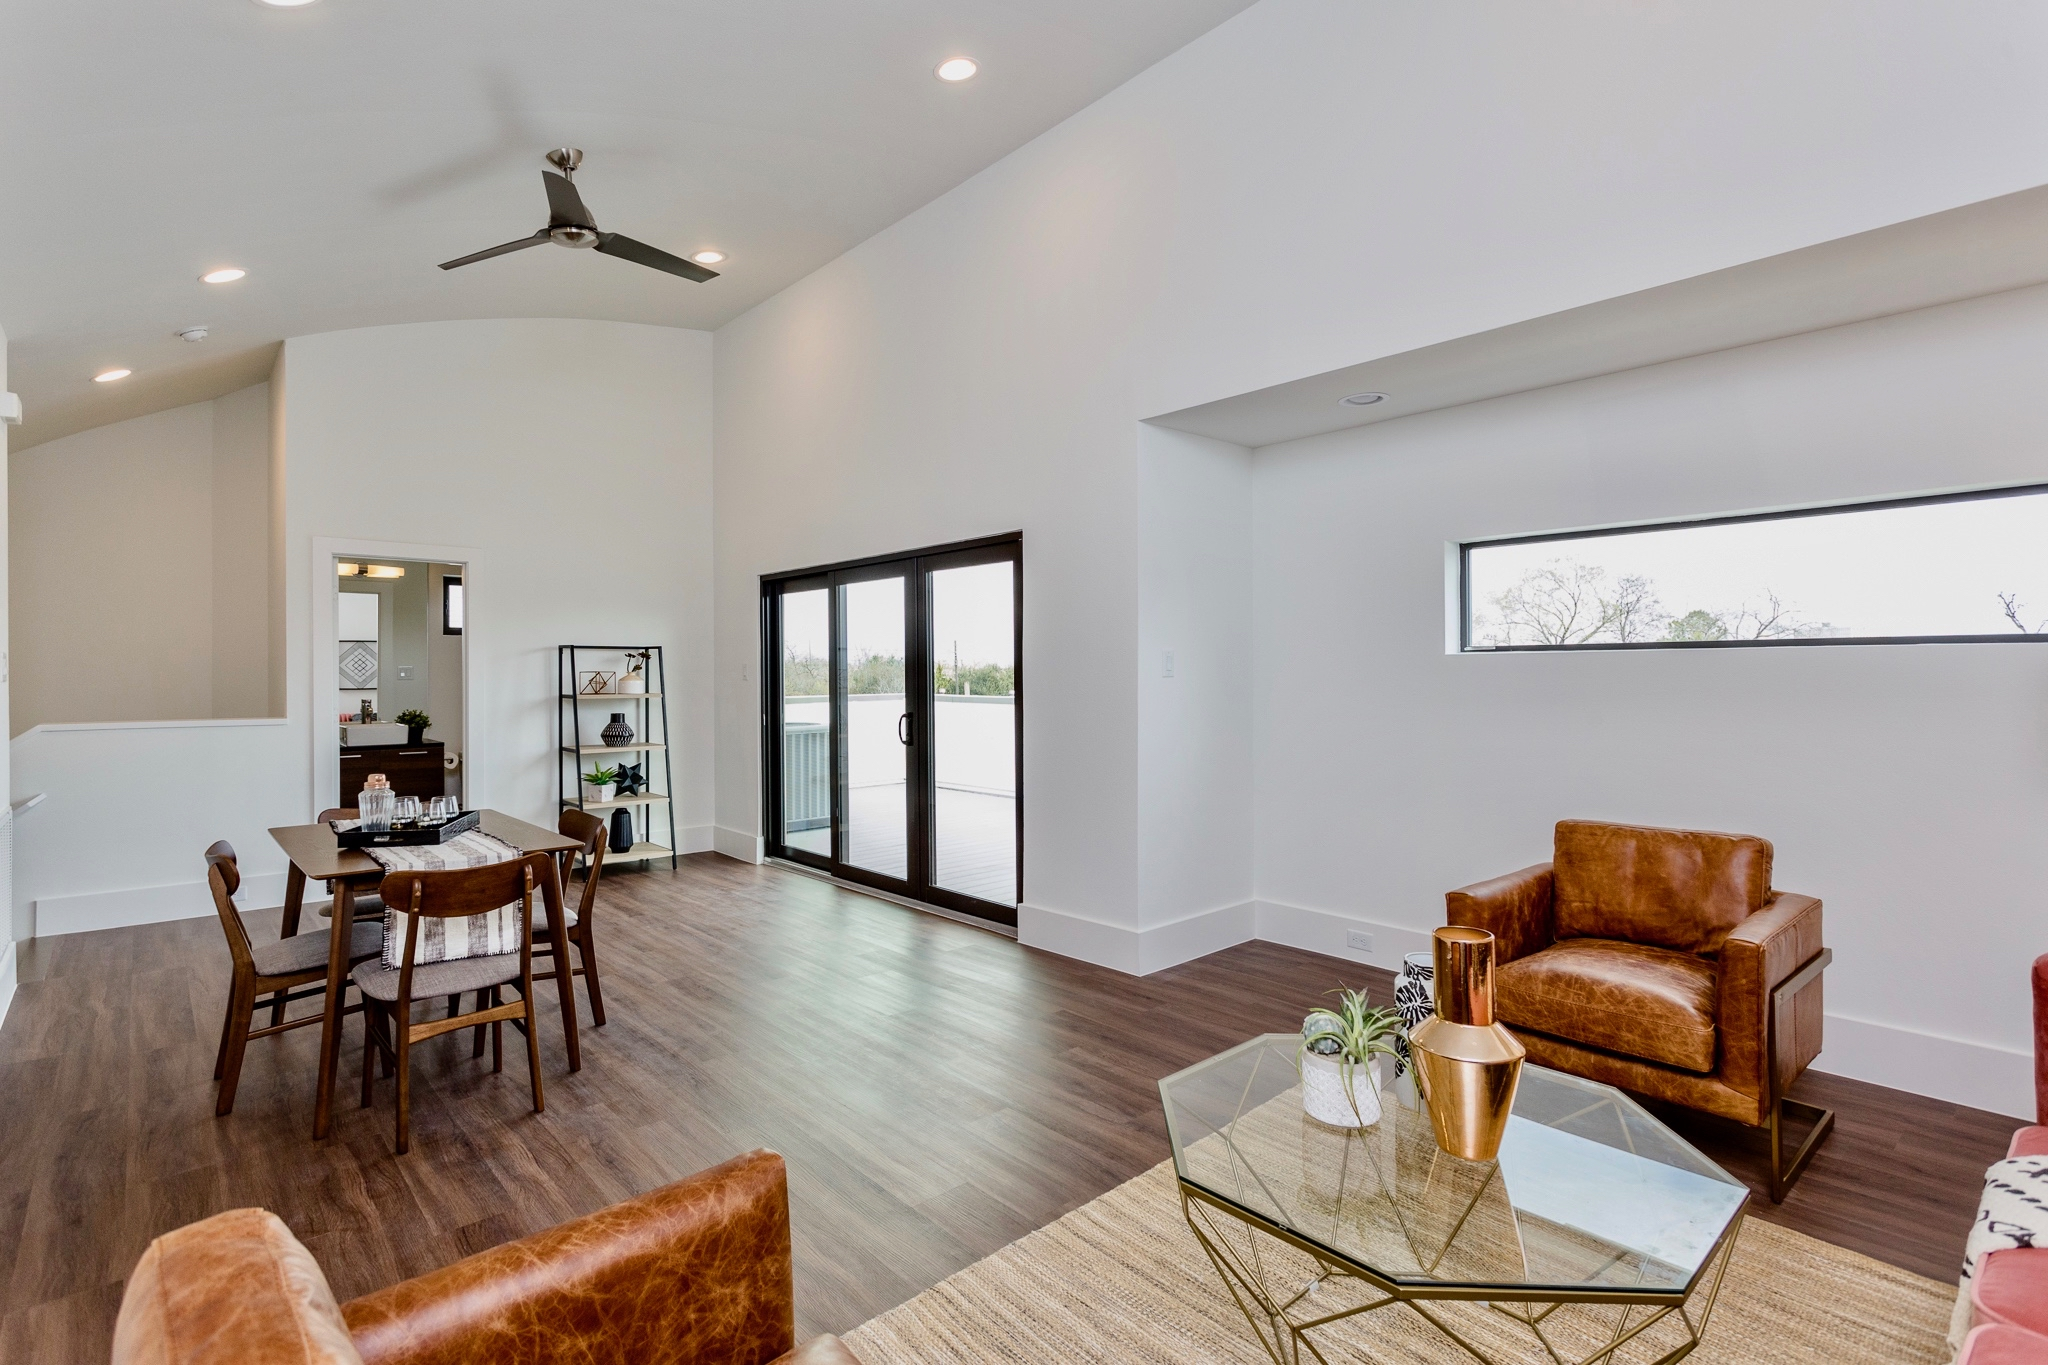 You'll appreciate the impressive dimensions of this versatile living space as well as its distinguishing arched ceiling.